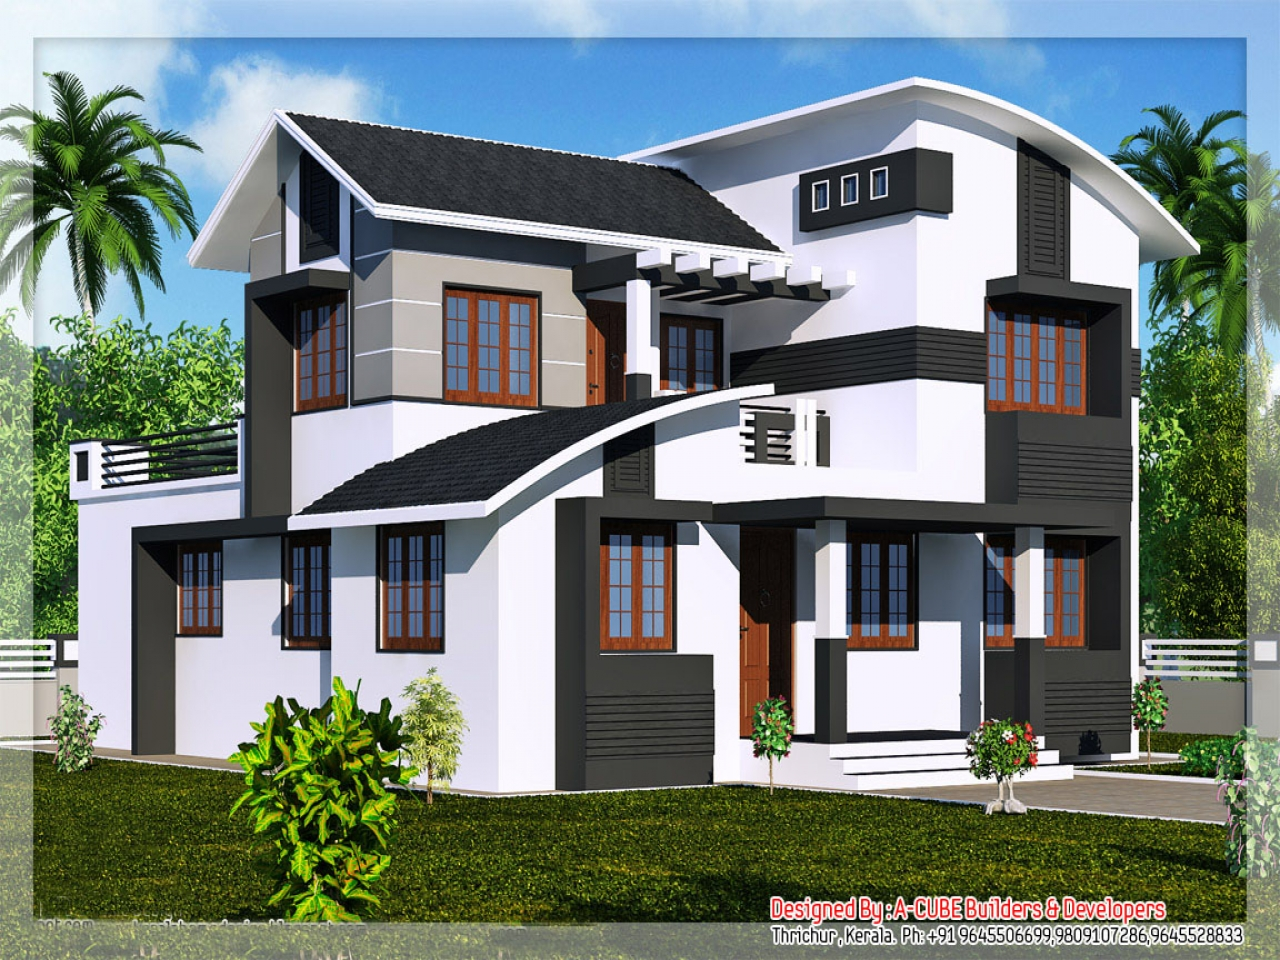 Usa House Design India Duplex House Design Duplex House Plans And Designs